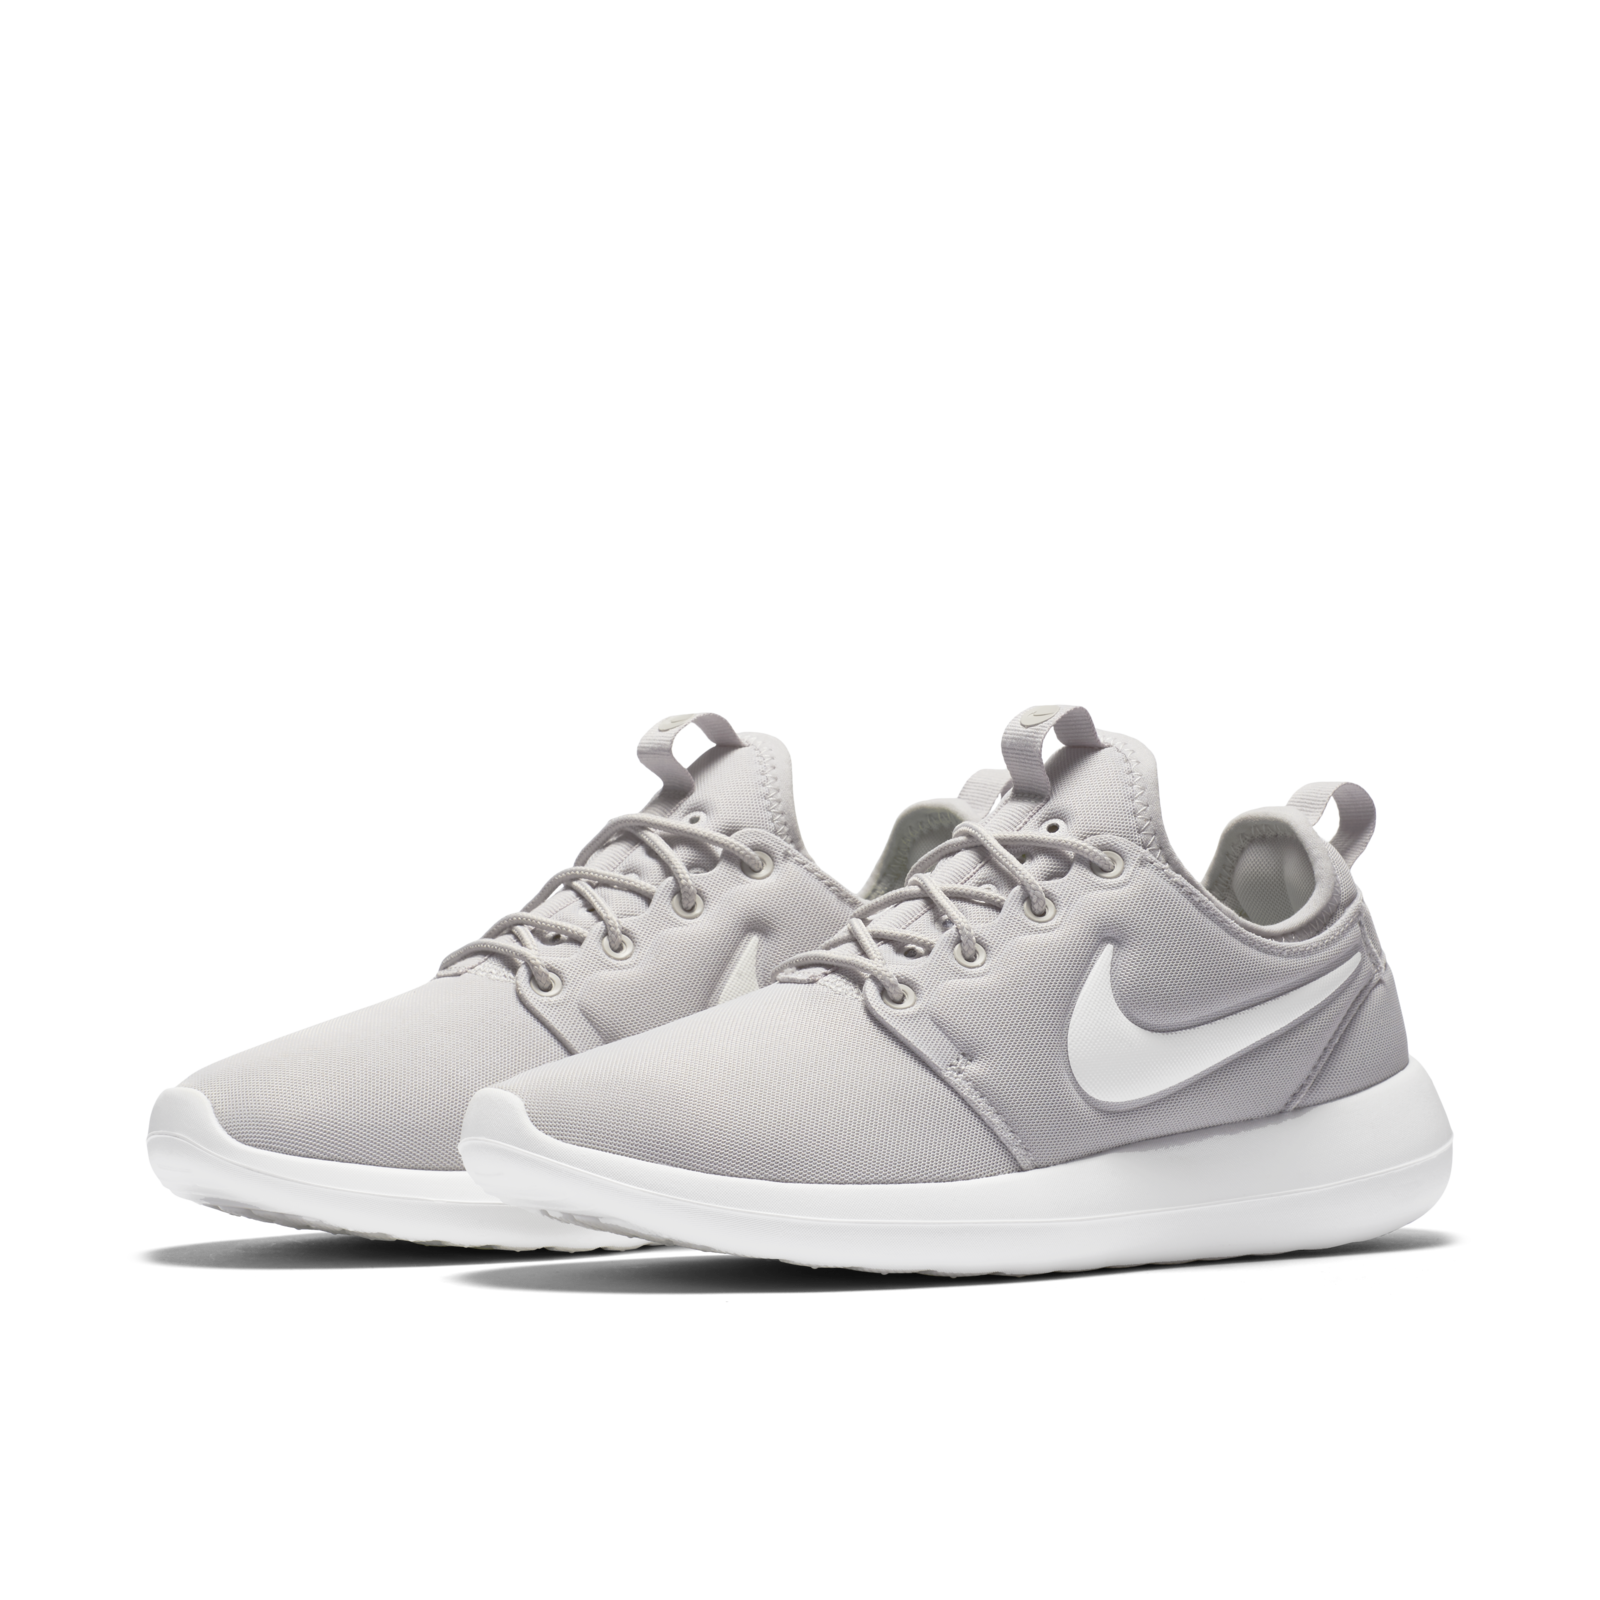 Nike Id Roshe Run Floral Gray Knit University of Science and Arts of